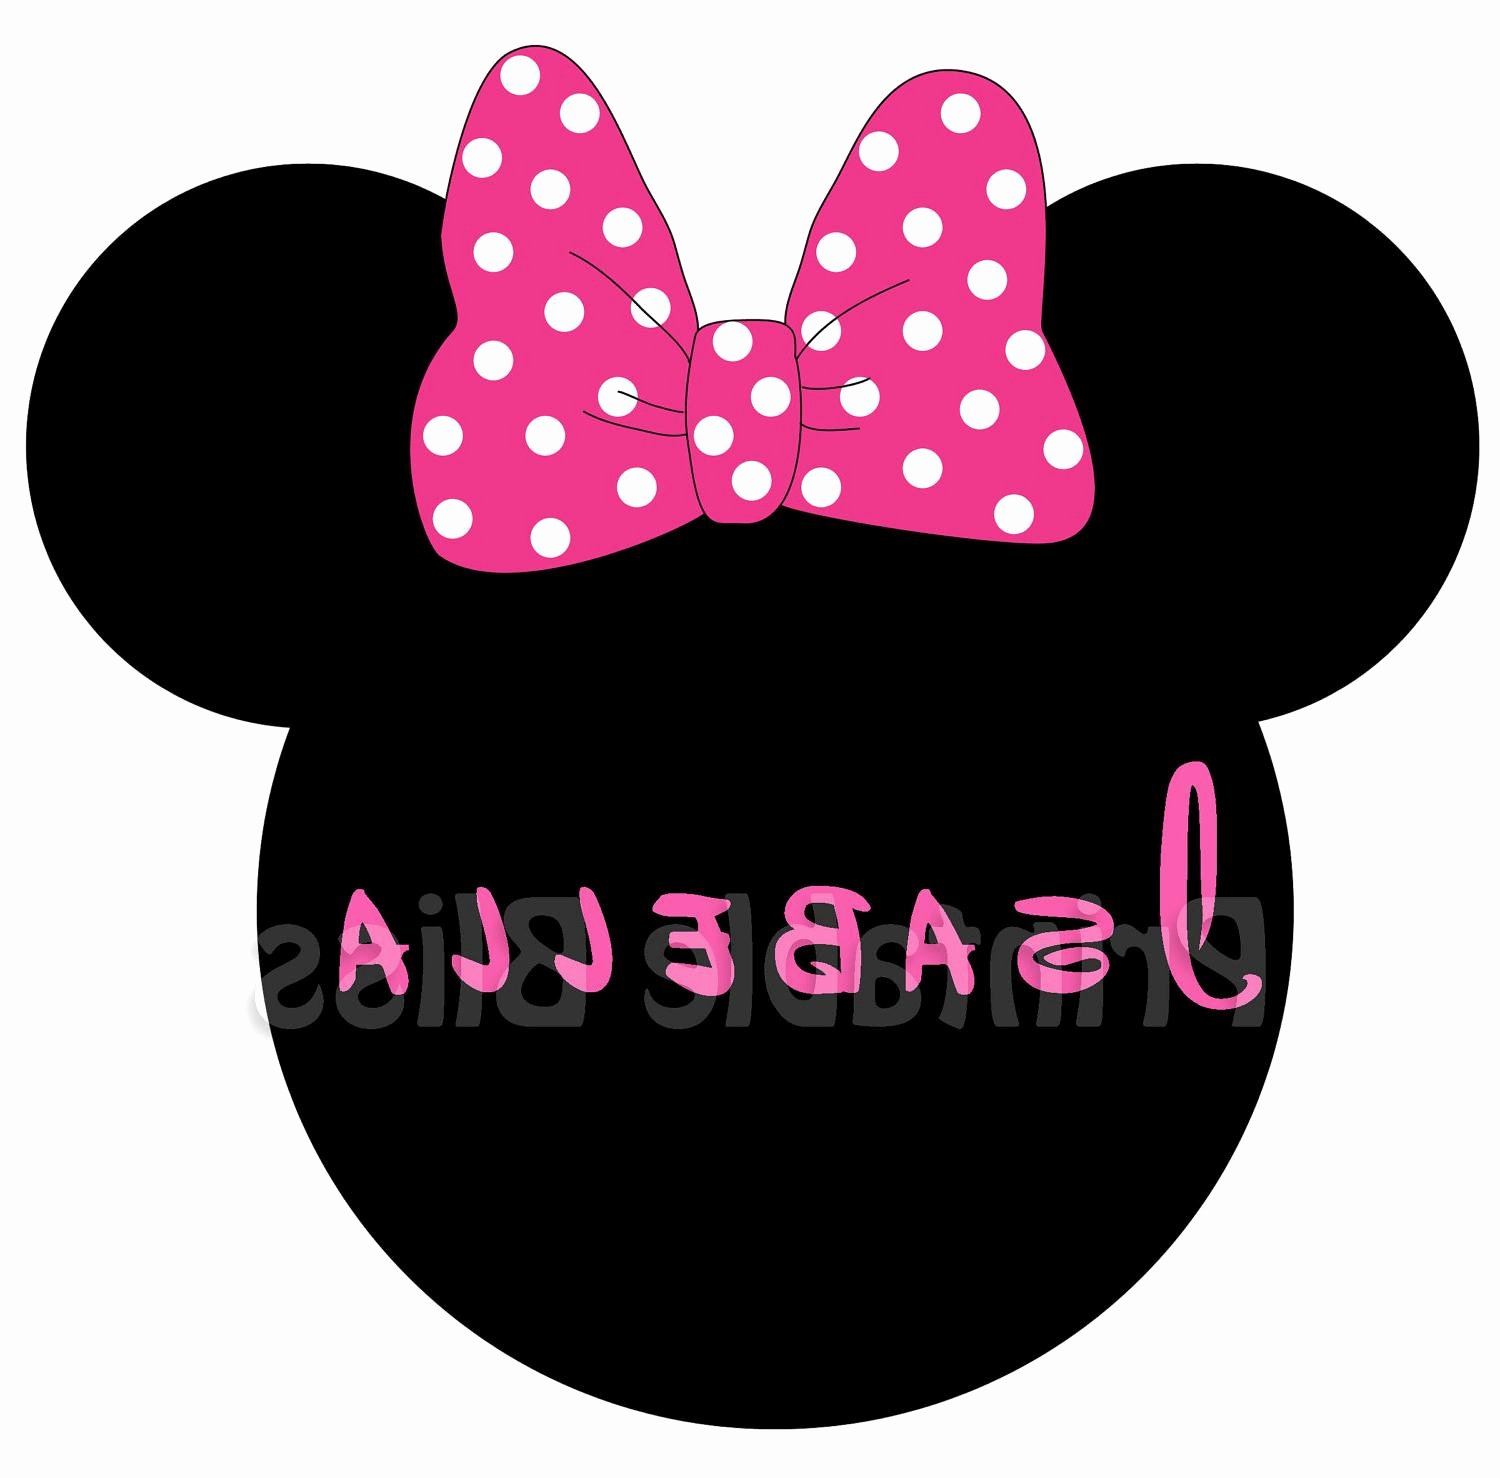 Minnie Mouse Bow Cut Out Beautiful Hd Minnie Mouse Bow Cut Out